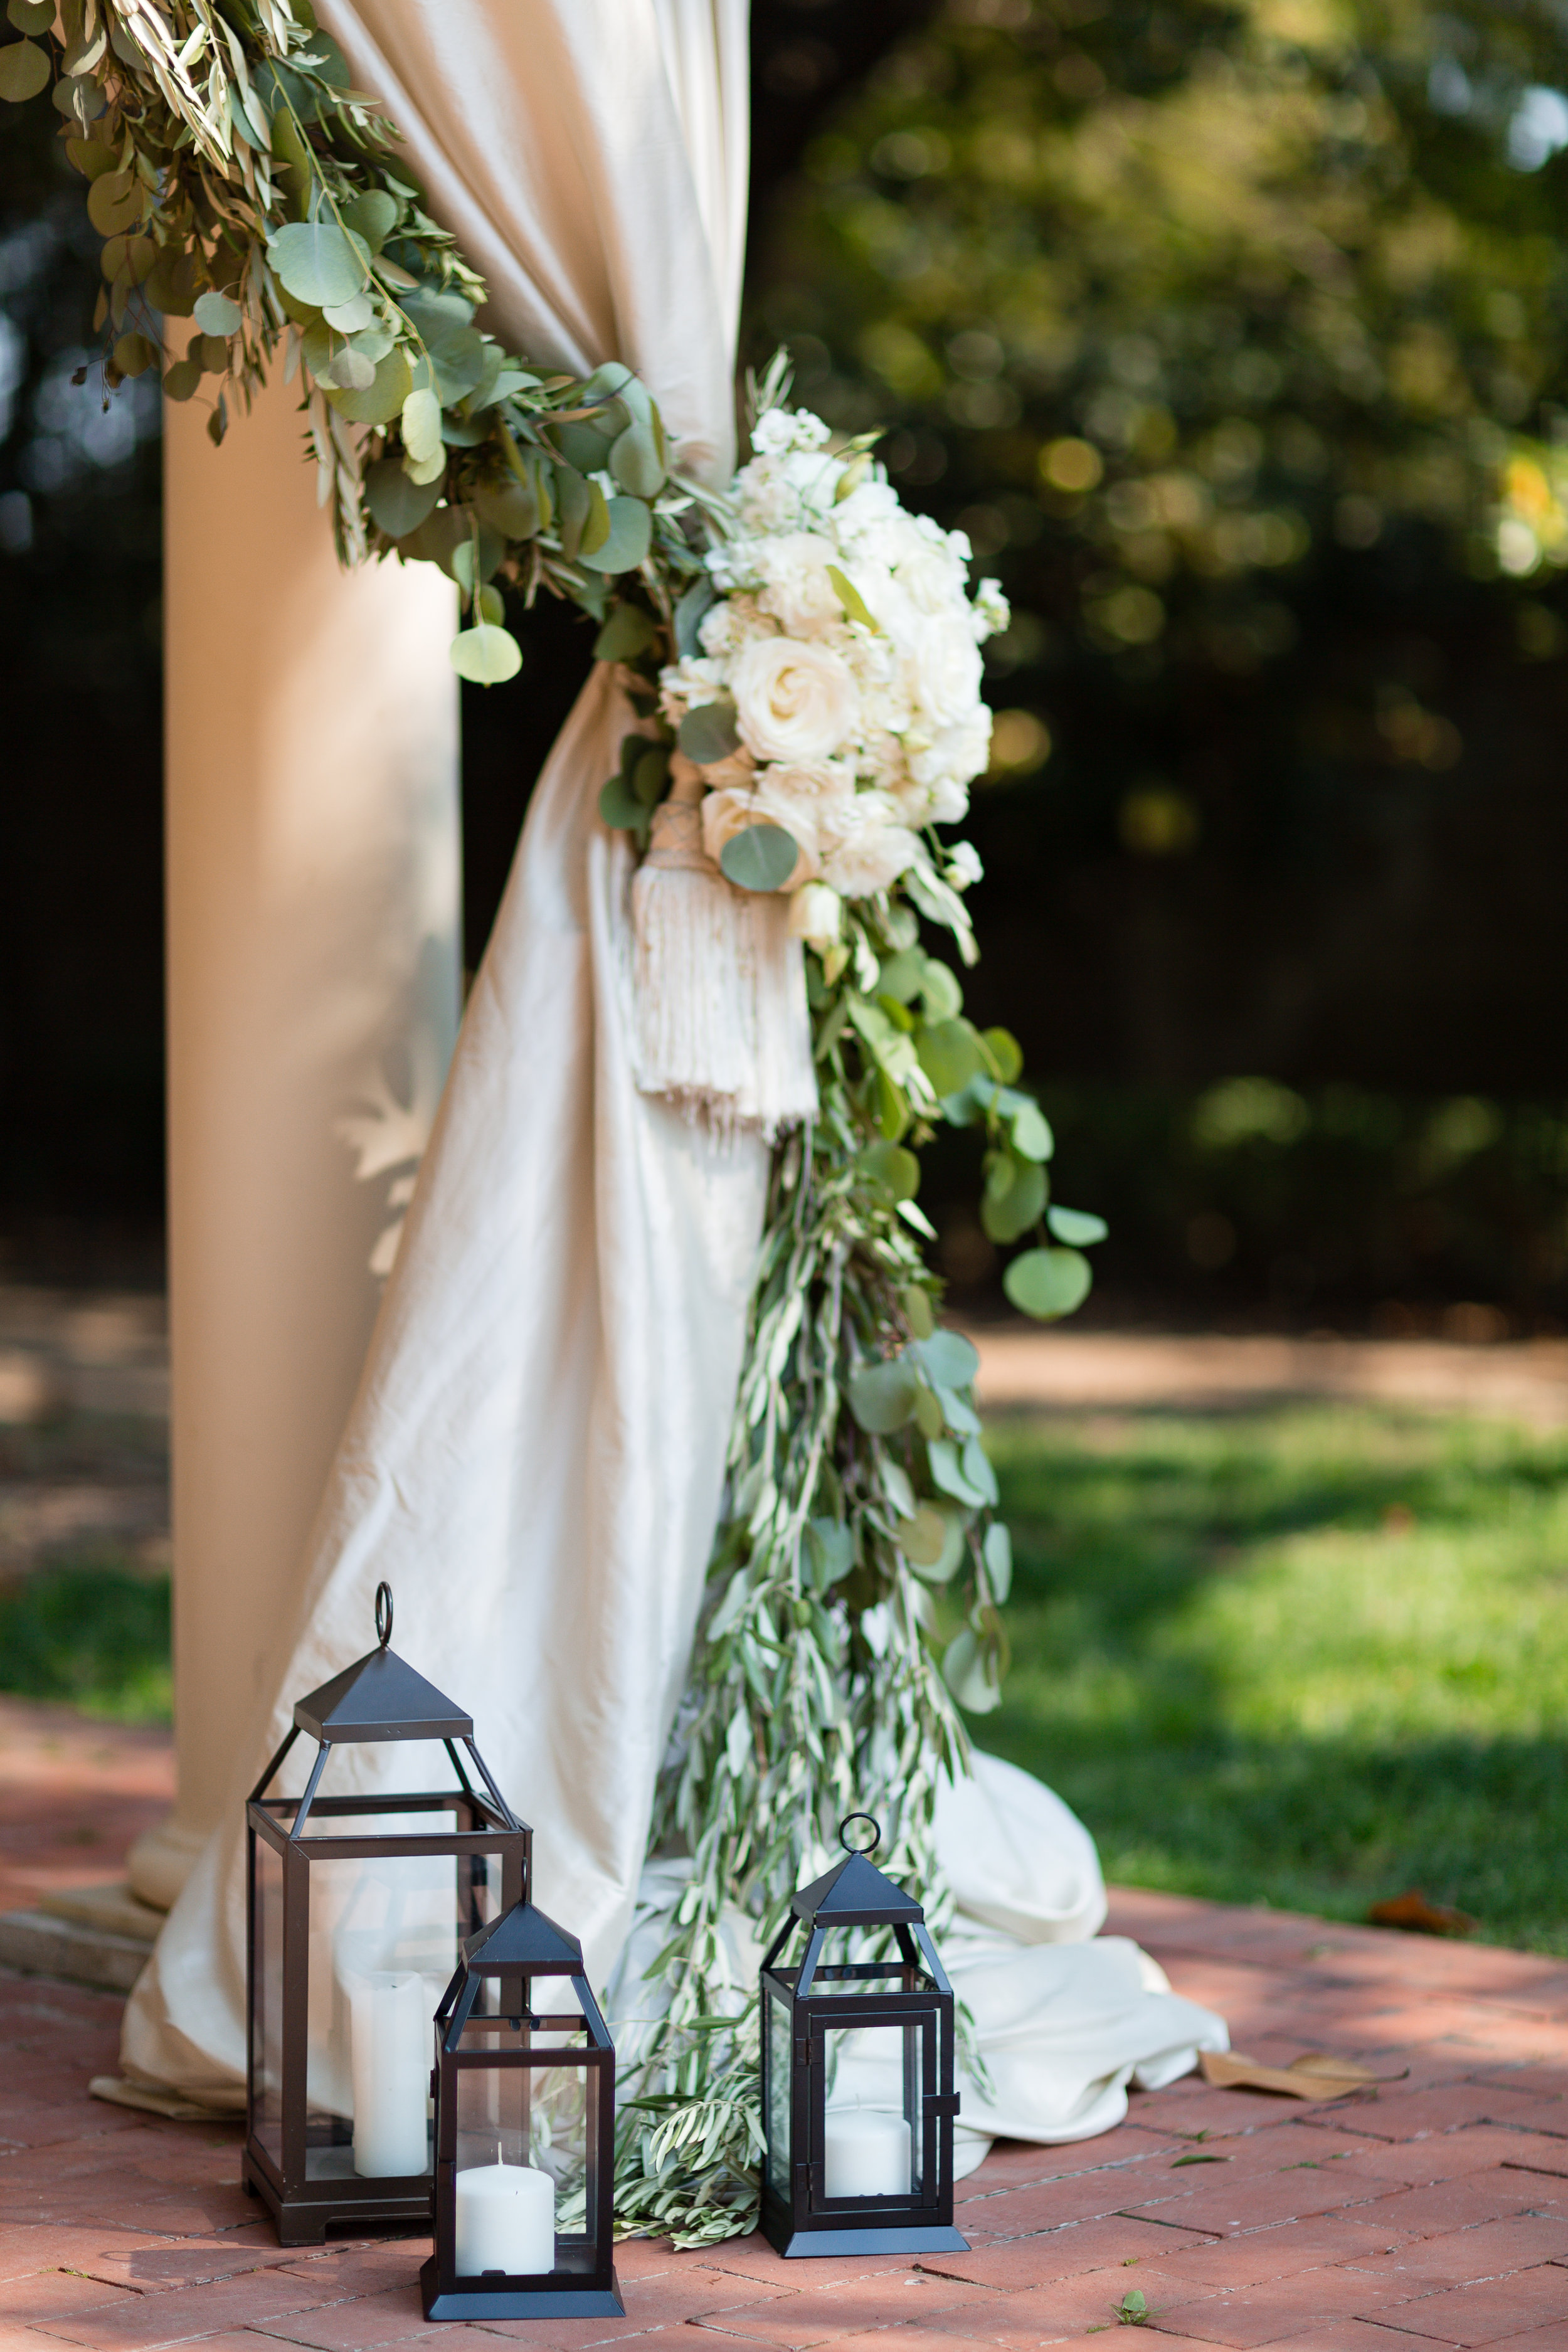 Annalise-Nick-Maple-Lawn-Wedding-251.jpg